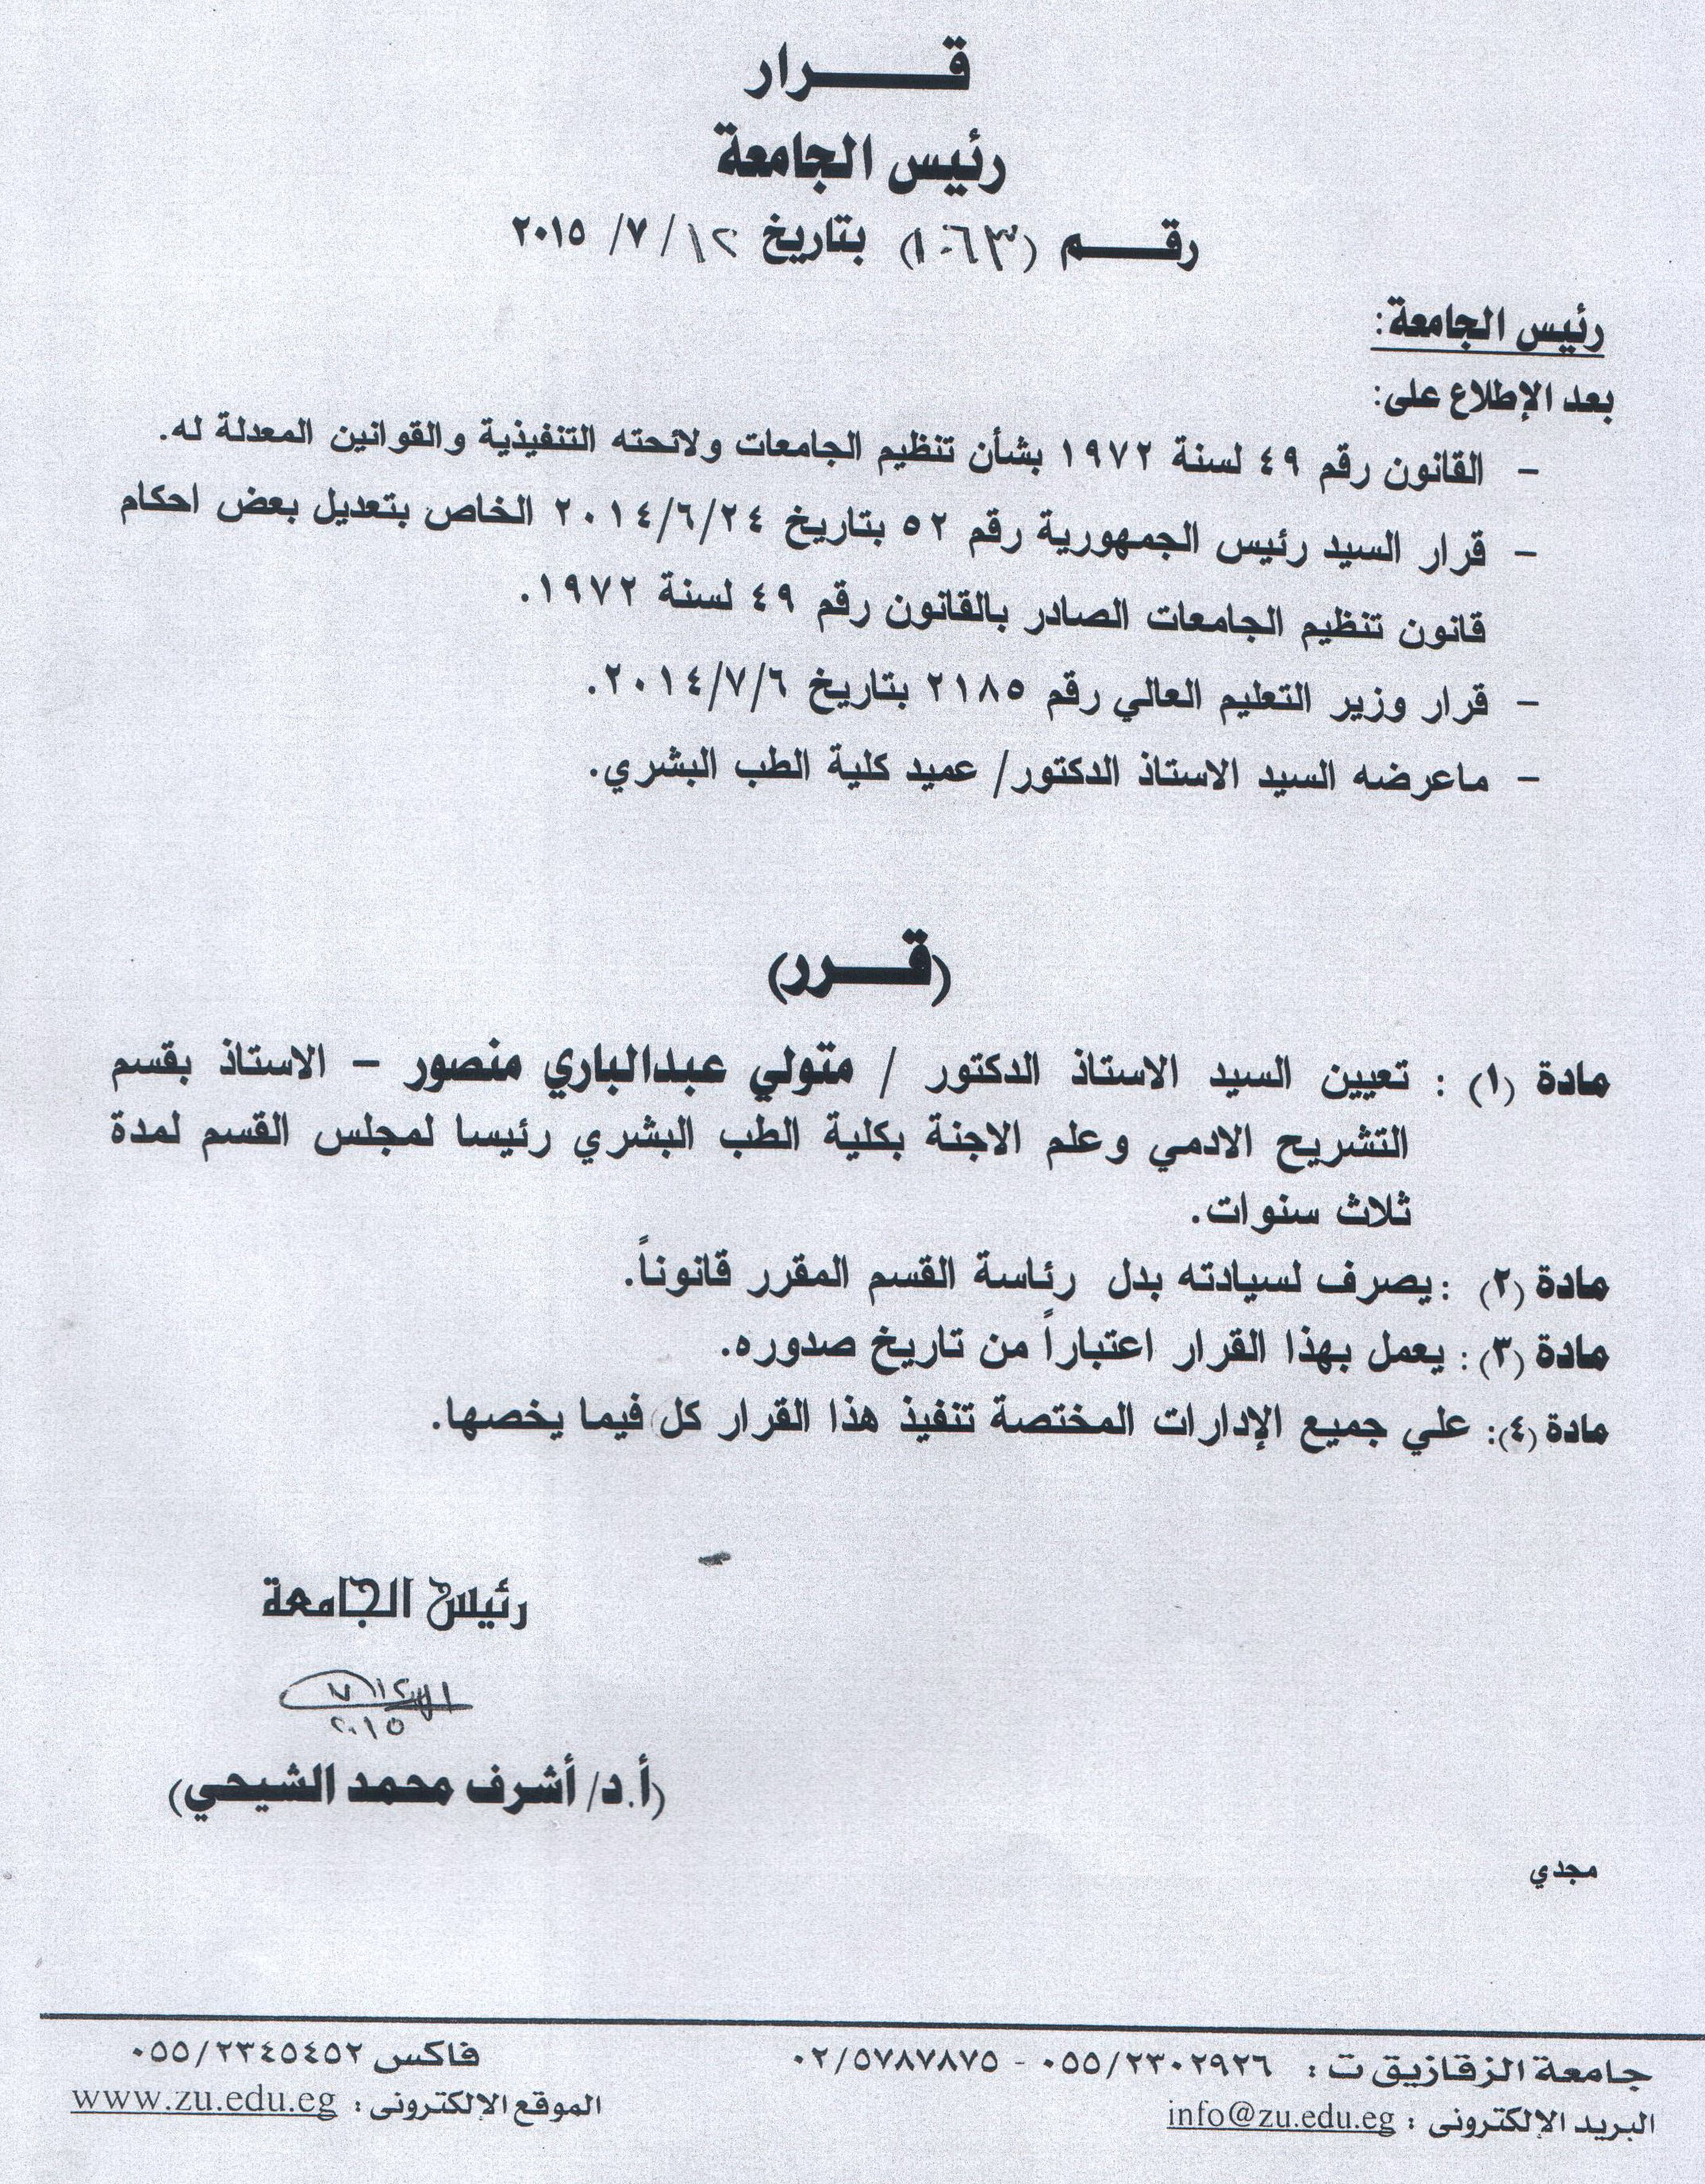 metwally Mansour chairman of the Department of Anatomy